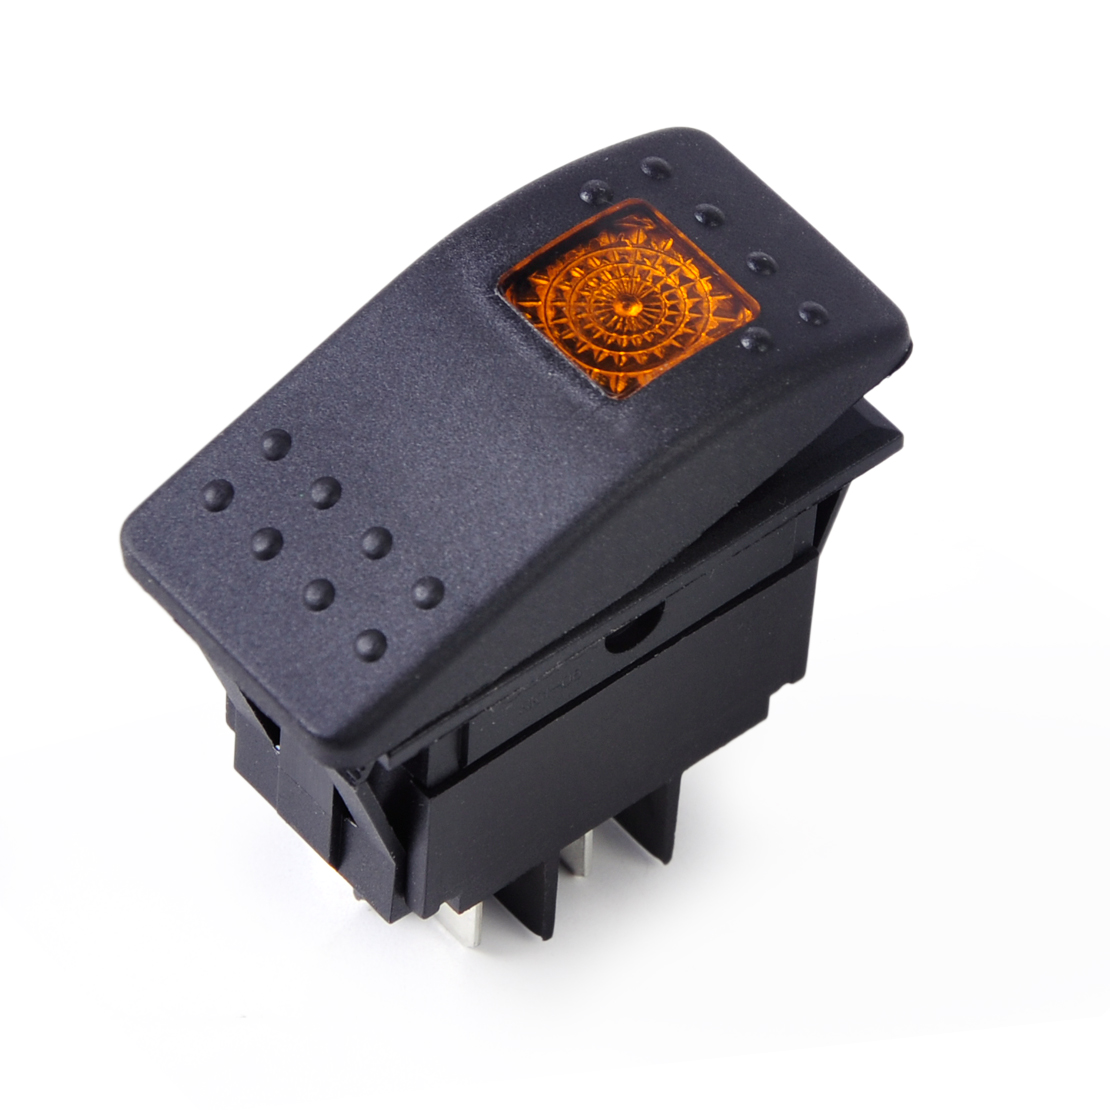 4Pin-Waterproof-Heaps-Rocker-Switch-Button-LED-ON-OFF-Car-Boat-Carling-12V-20A thumbnail 7